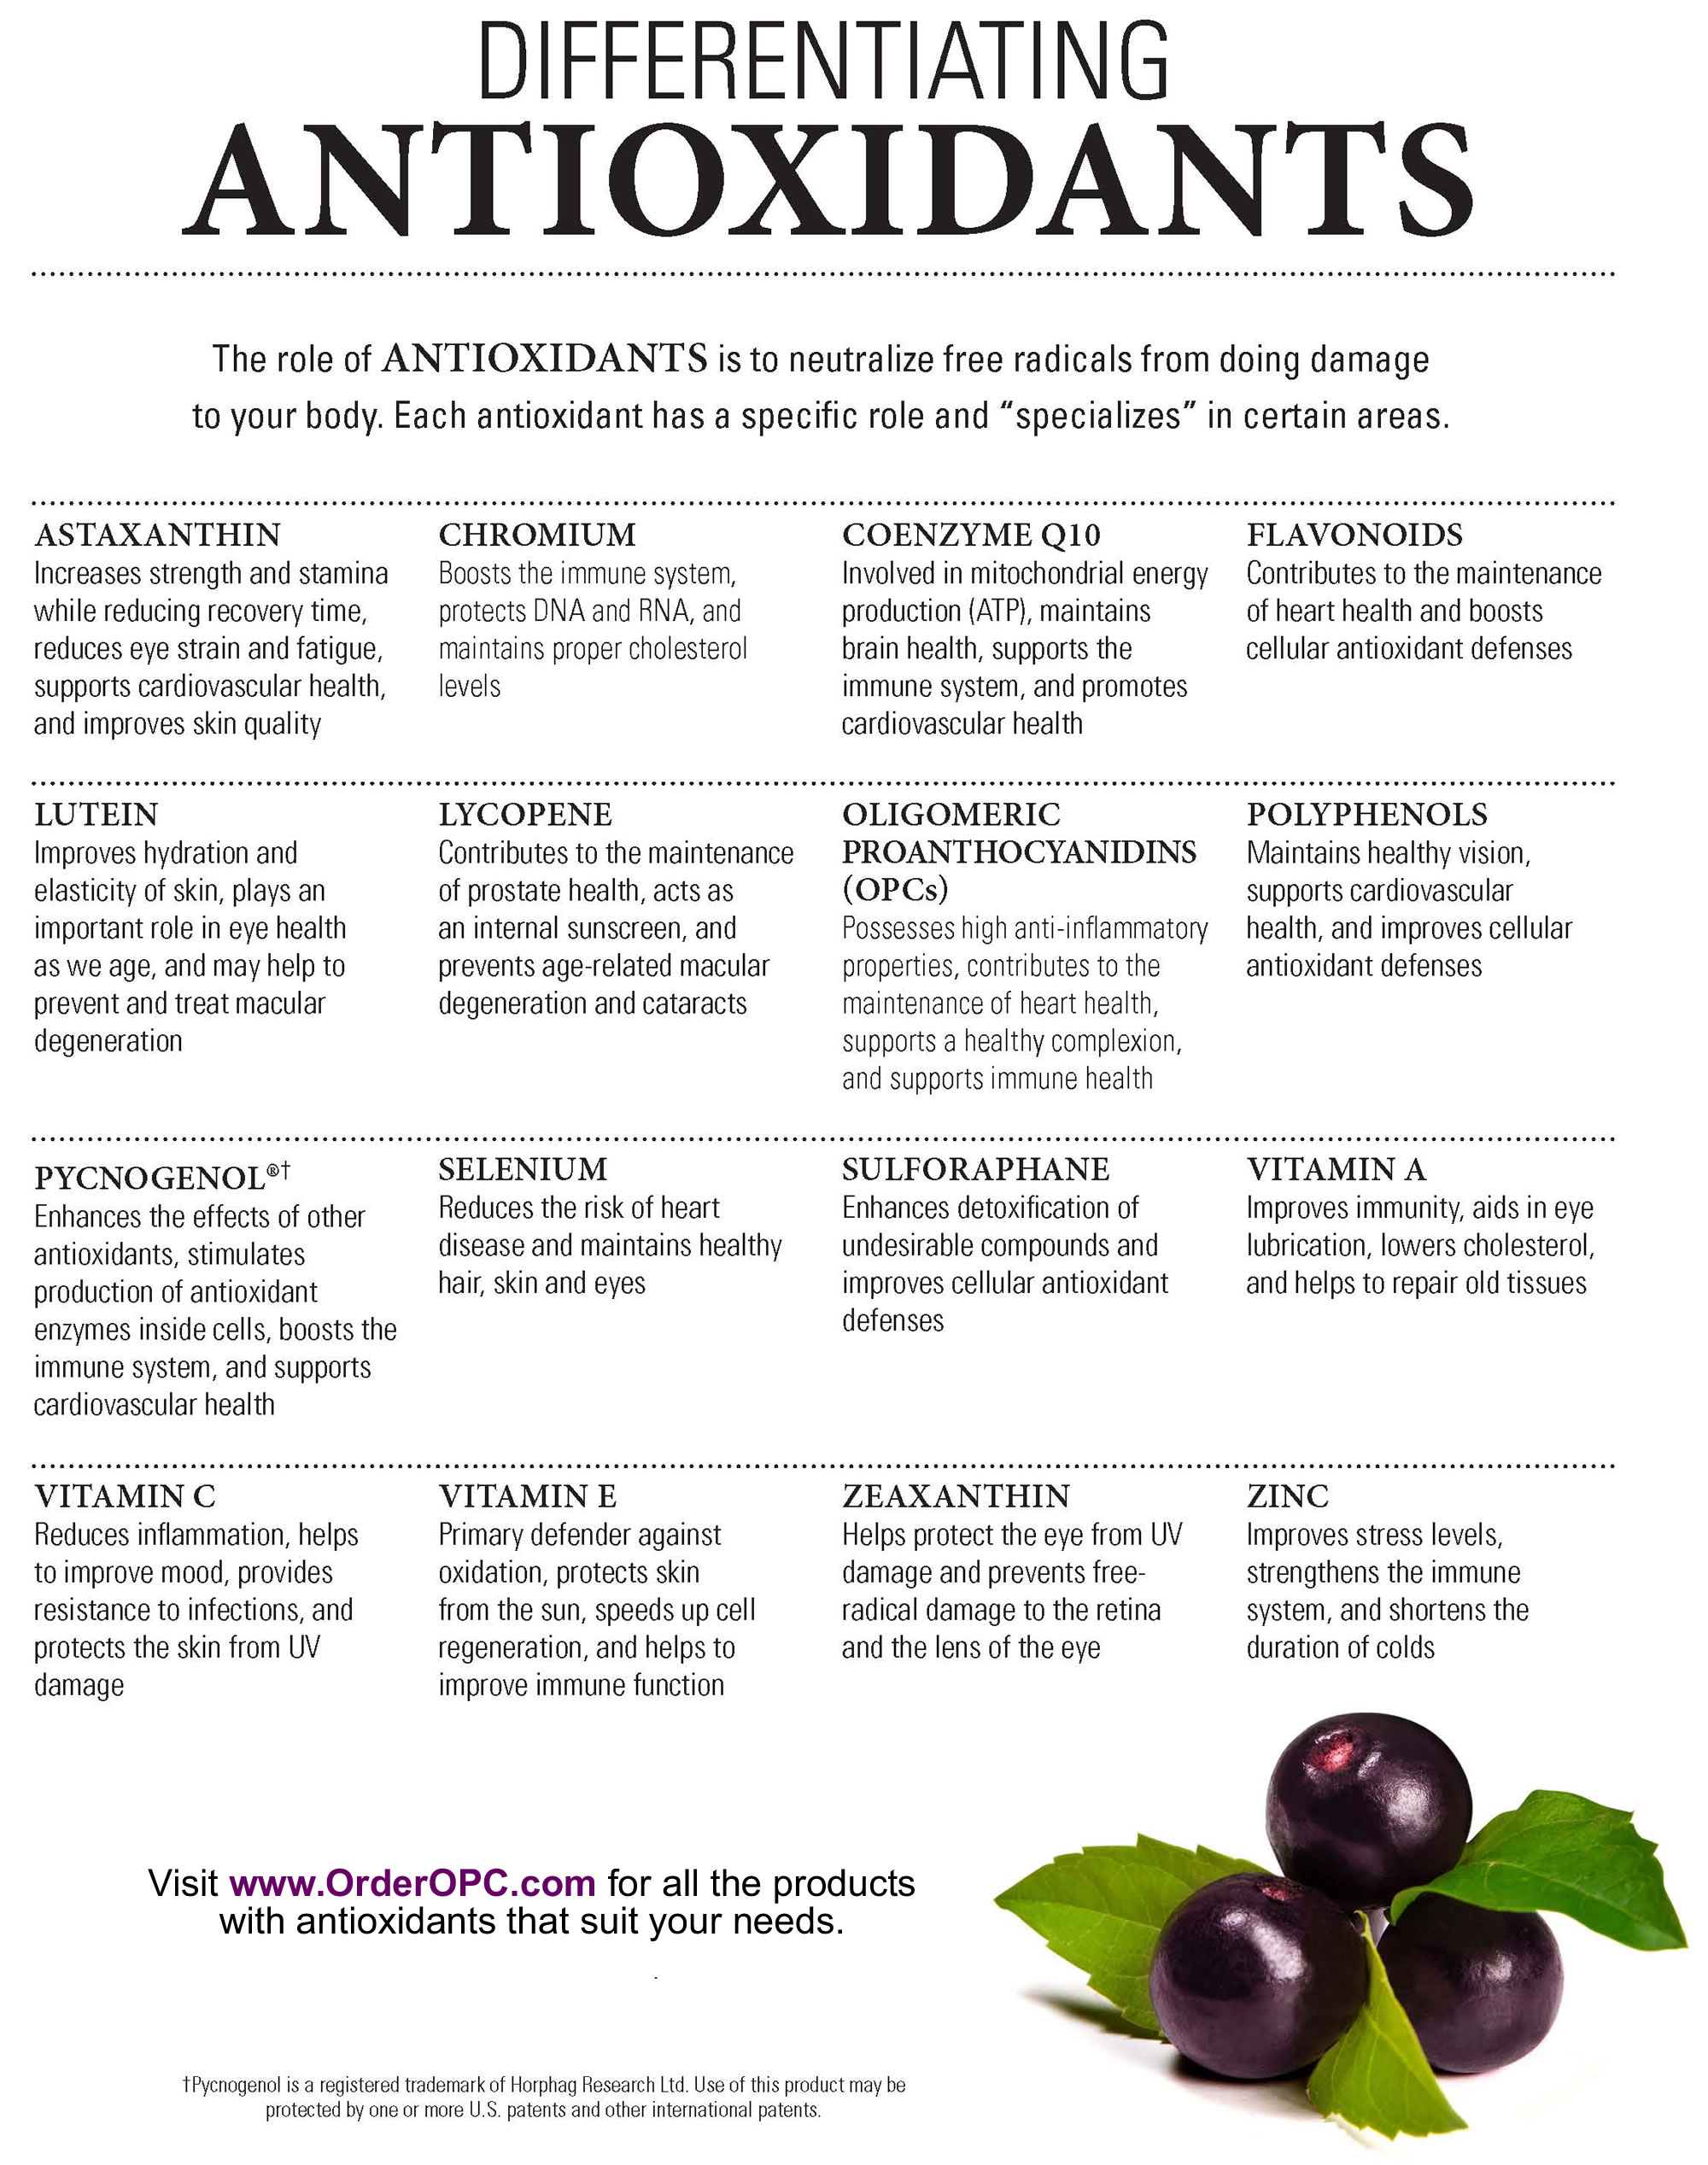 The-Role-Of-Antioxidants